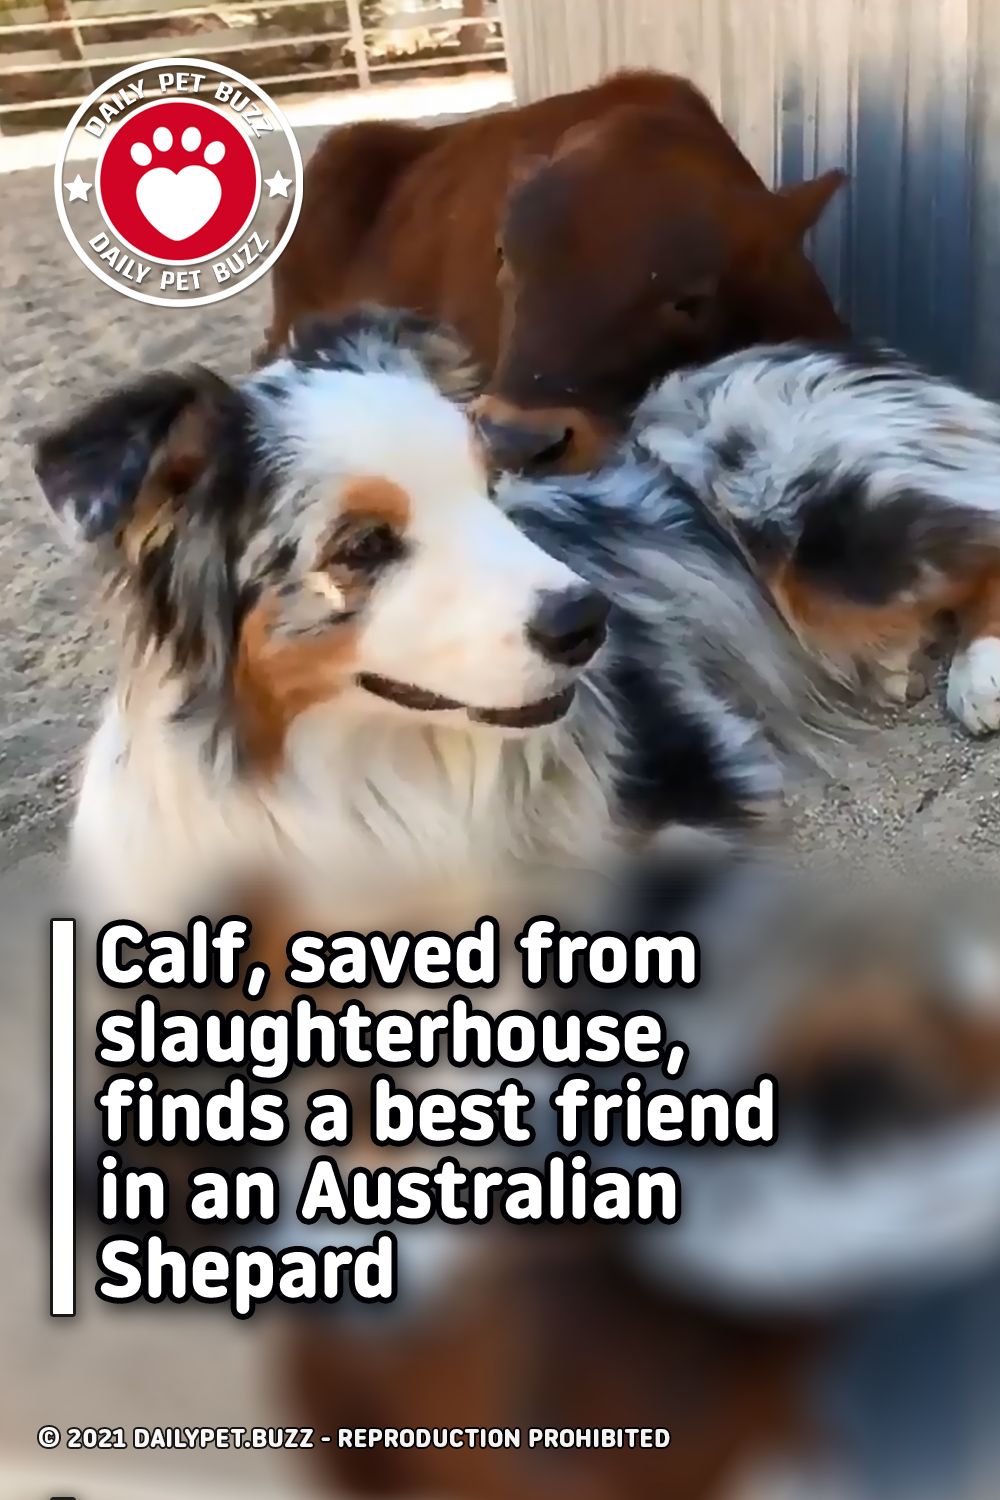 Calf, saved from slaughterhouse, finds a best friend in an Australian Shepard